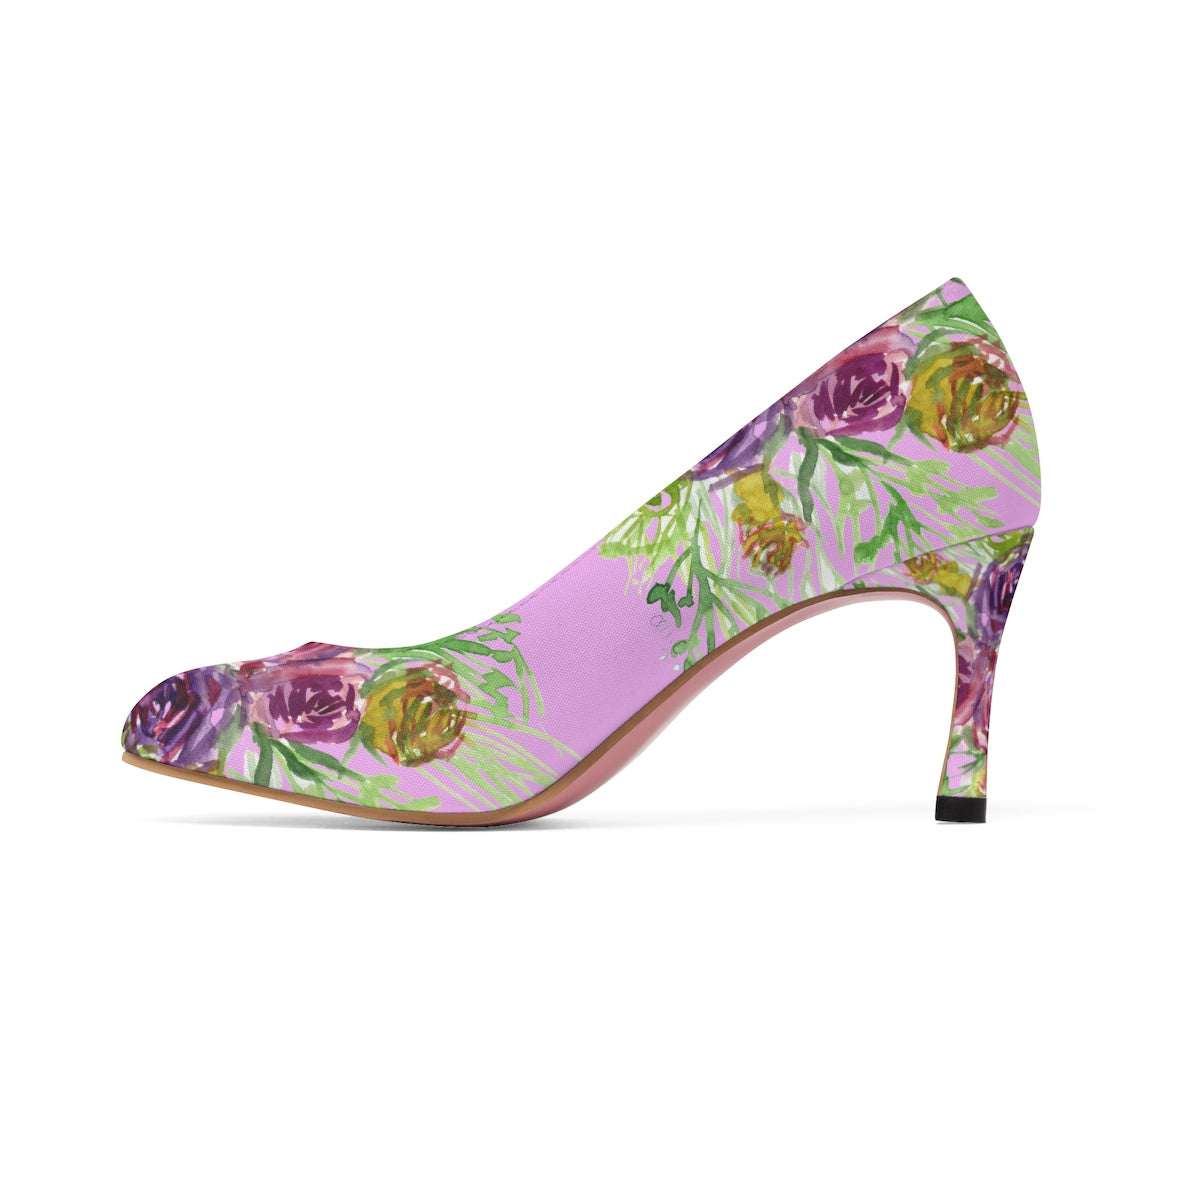 "Pastel Pink Bridal Wedding Floral Print Women's 3"" High Heels Shoes (US Size: 5-11)-3 inch Heels-US 7-Heidi Kimura Art LLC"